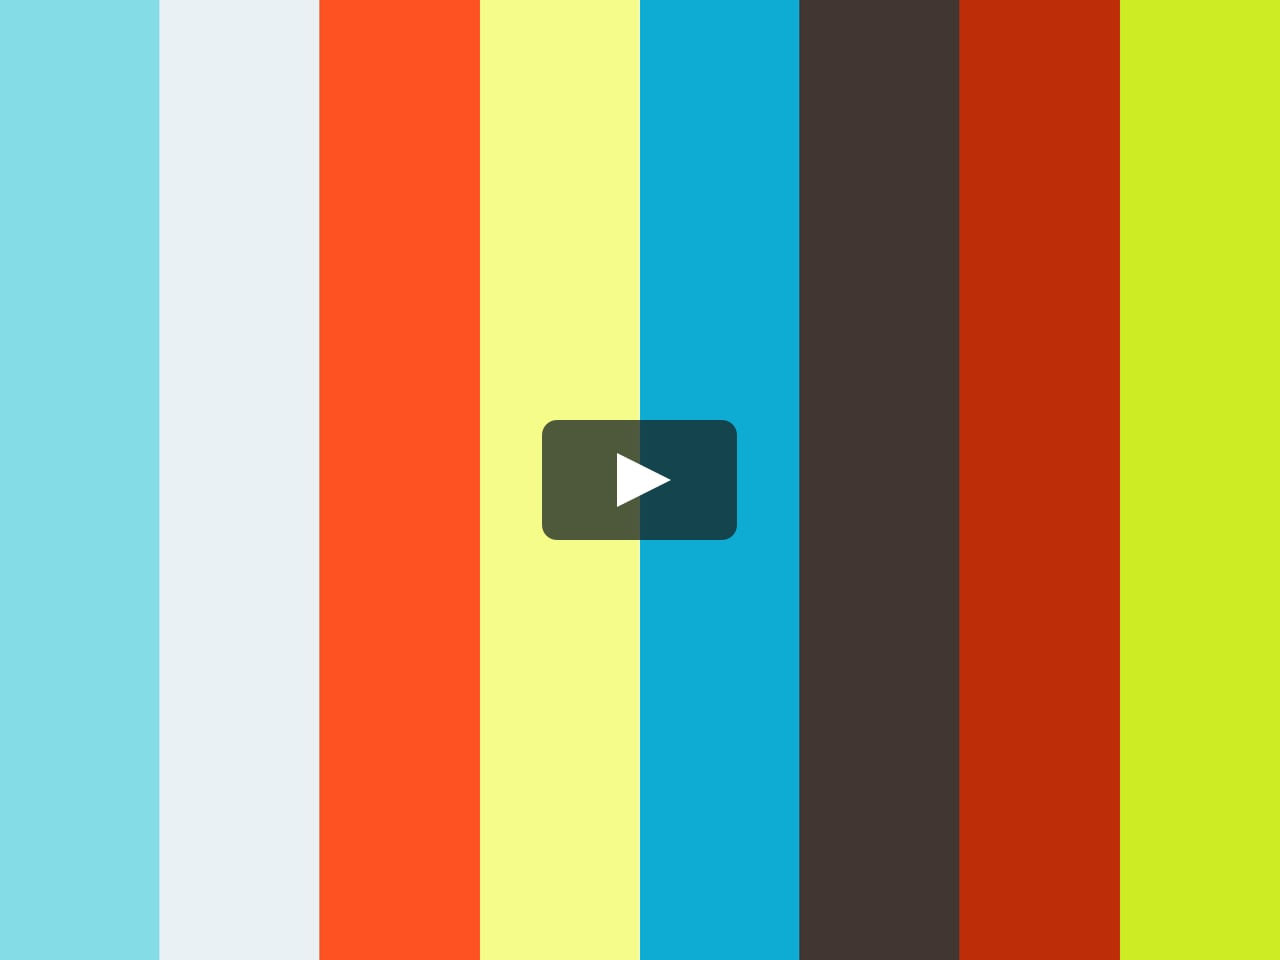 Cce Technical Paper On Vimeo